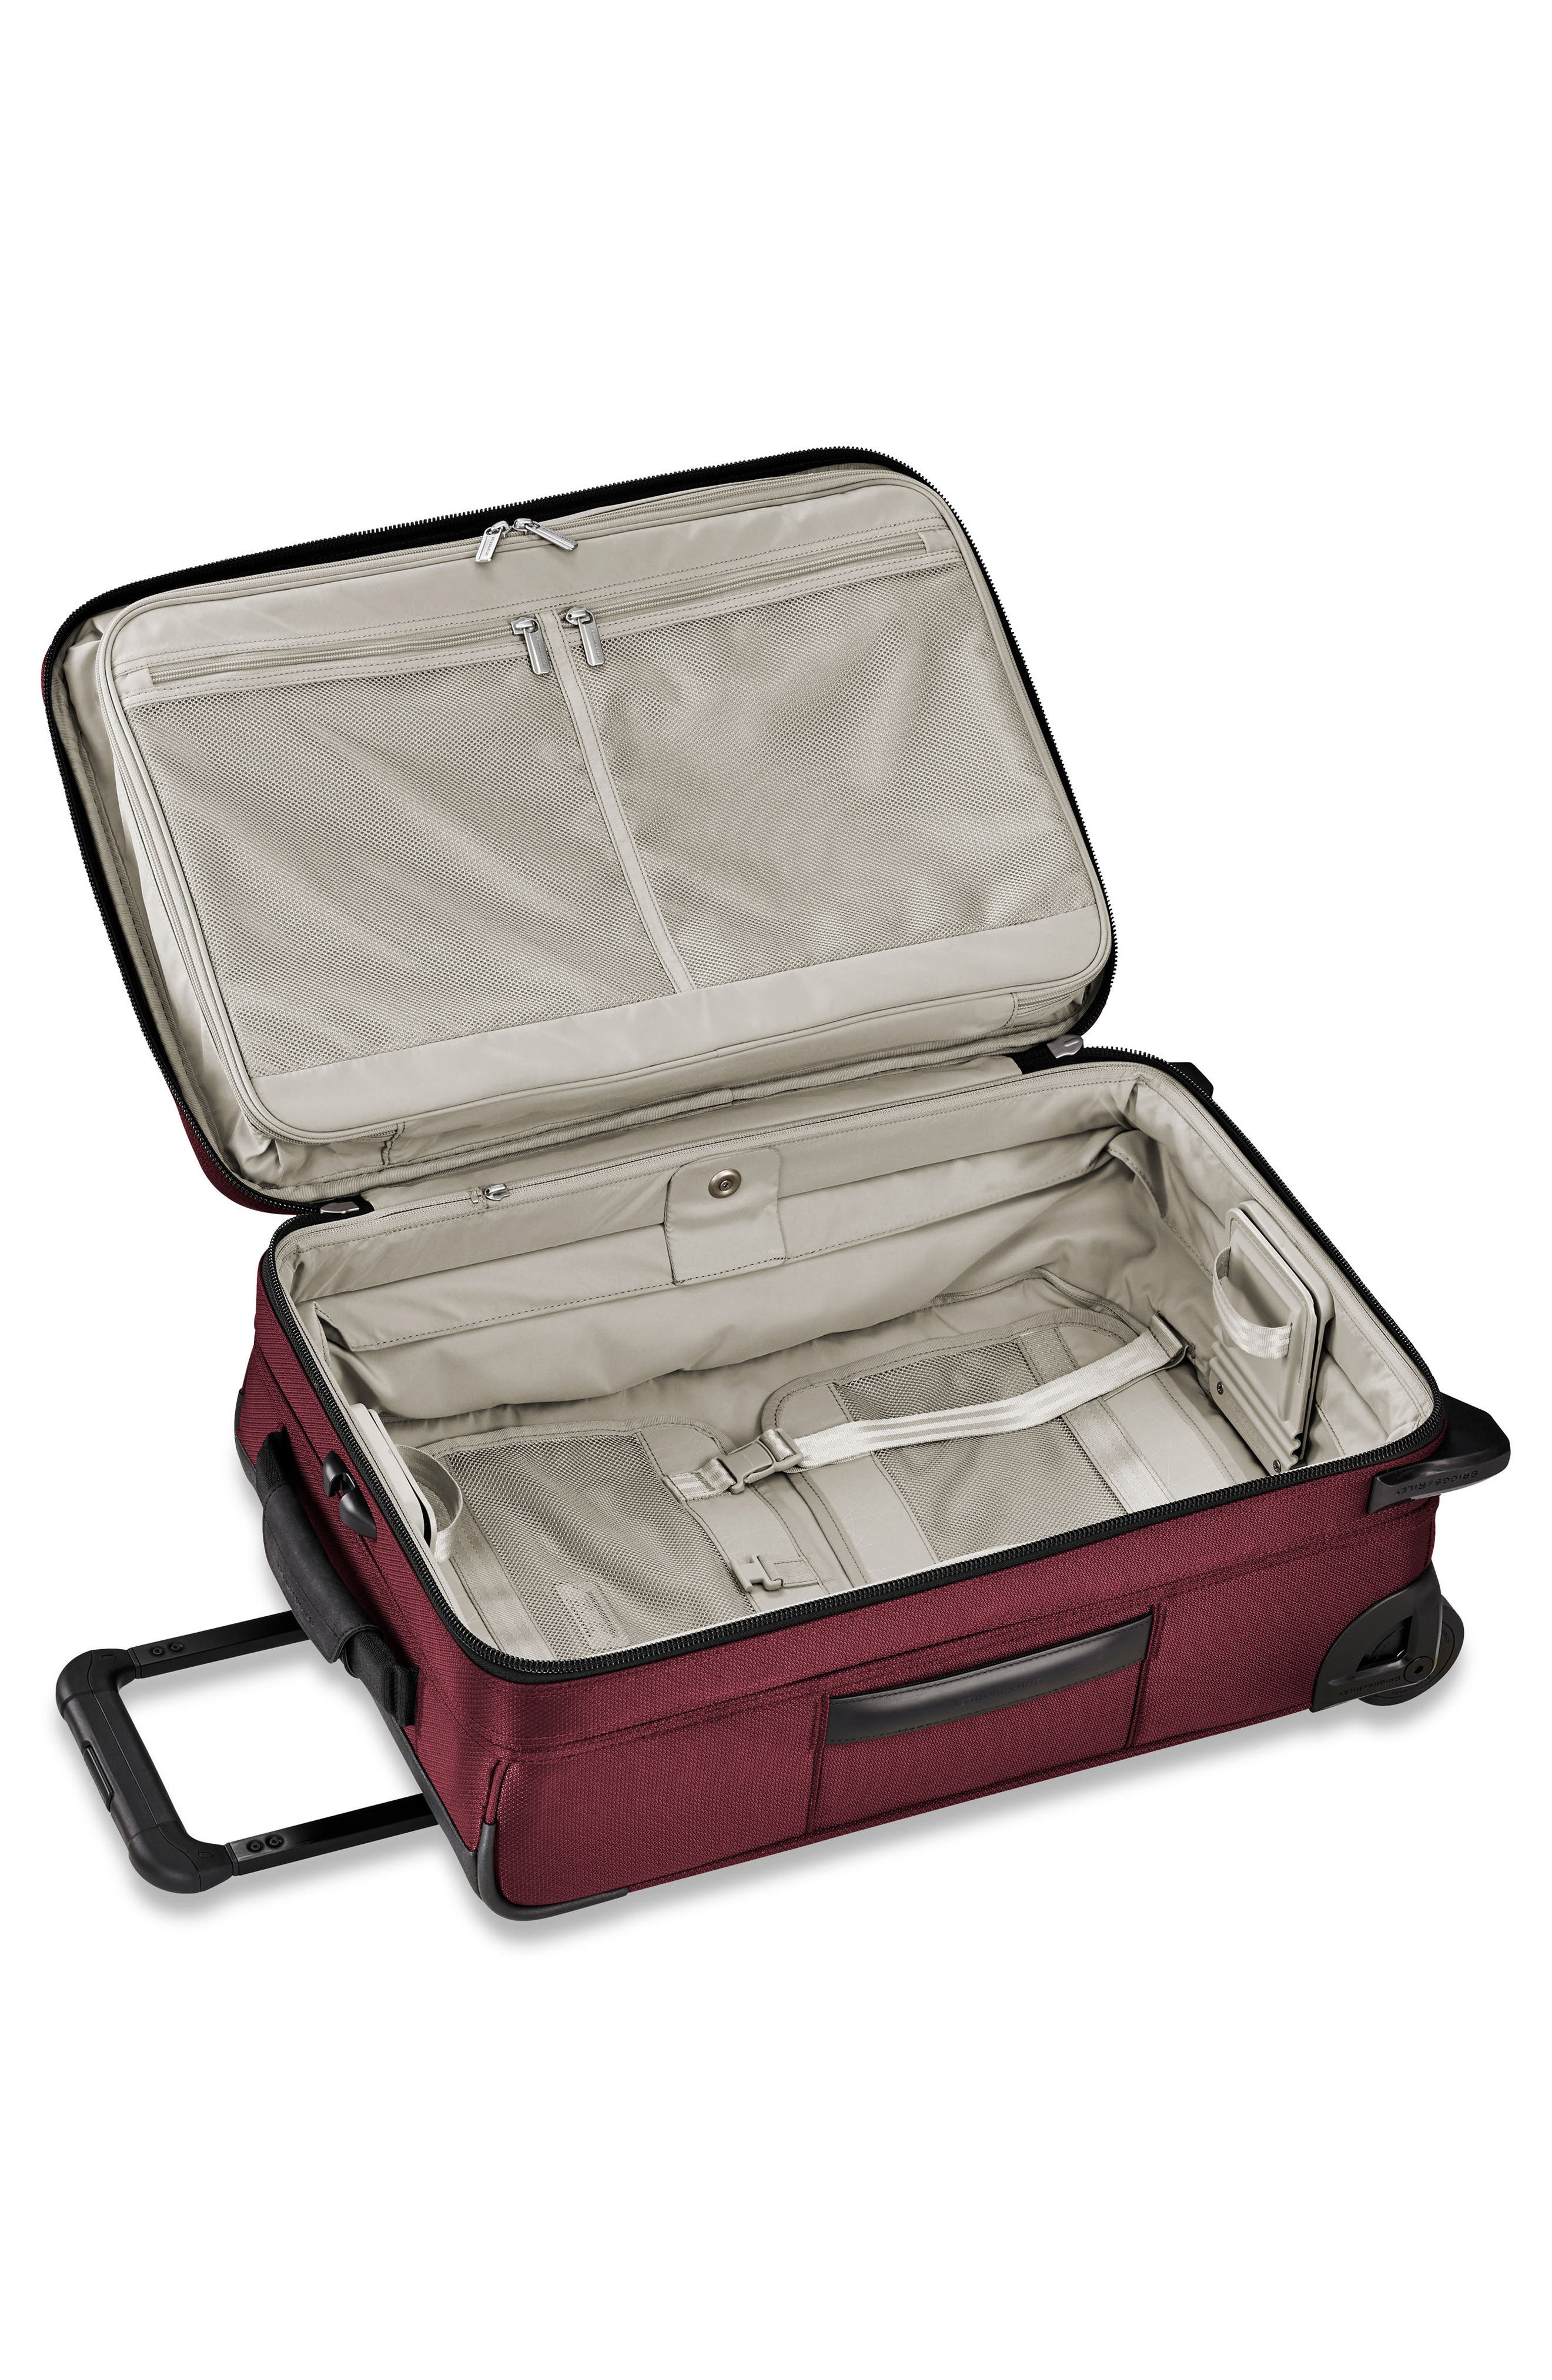 Alternate Image 2  - Briggs & Riley Transcend 400 22-Inch Wheeled Carry-On